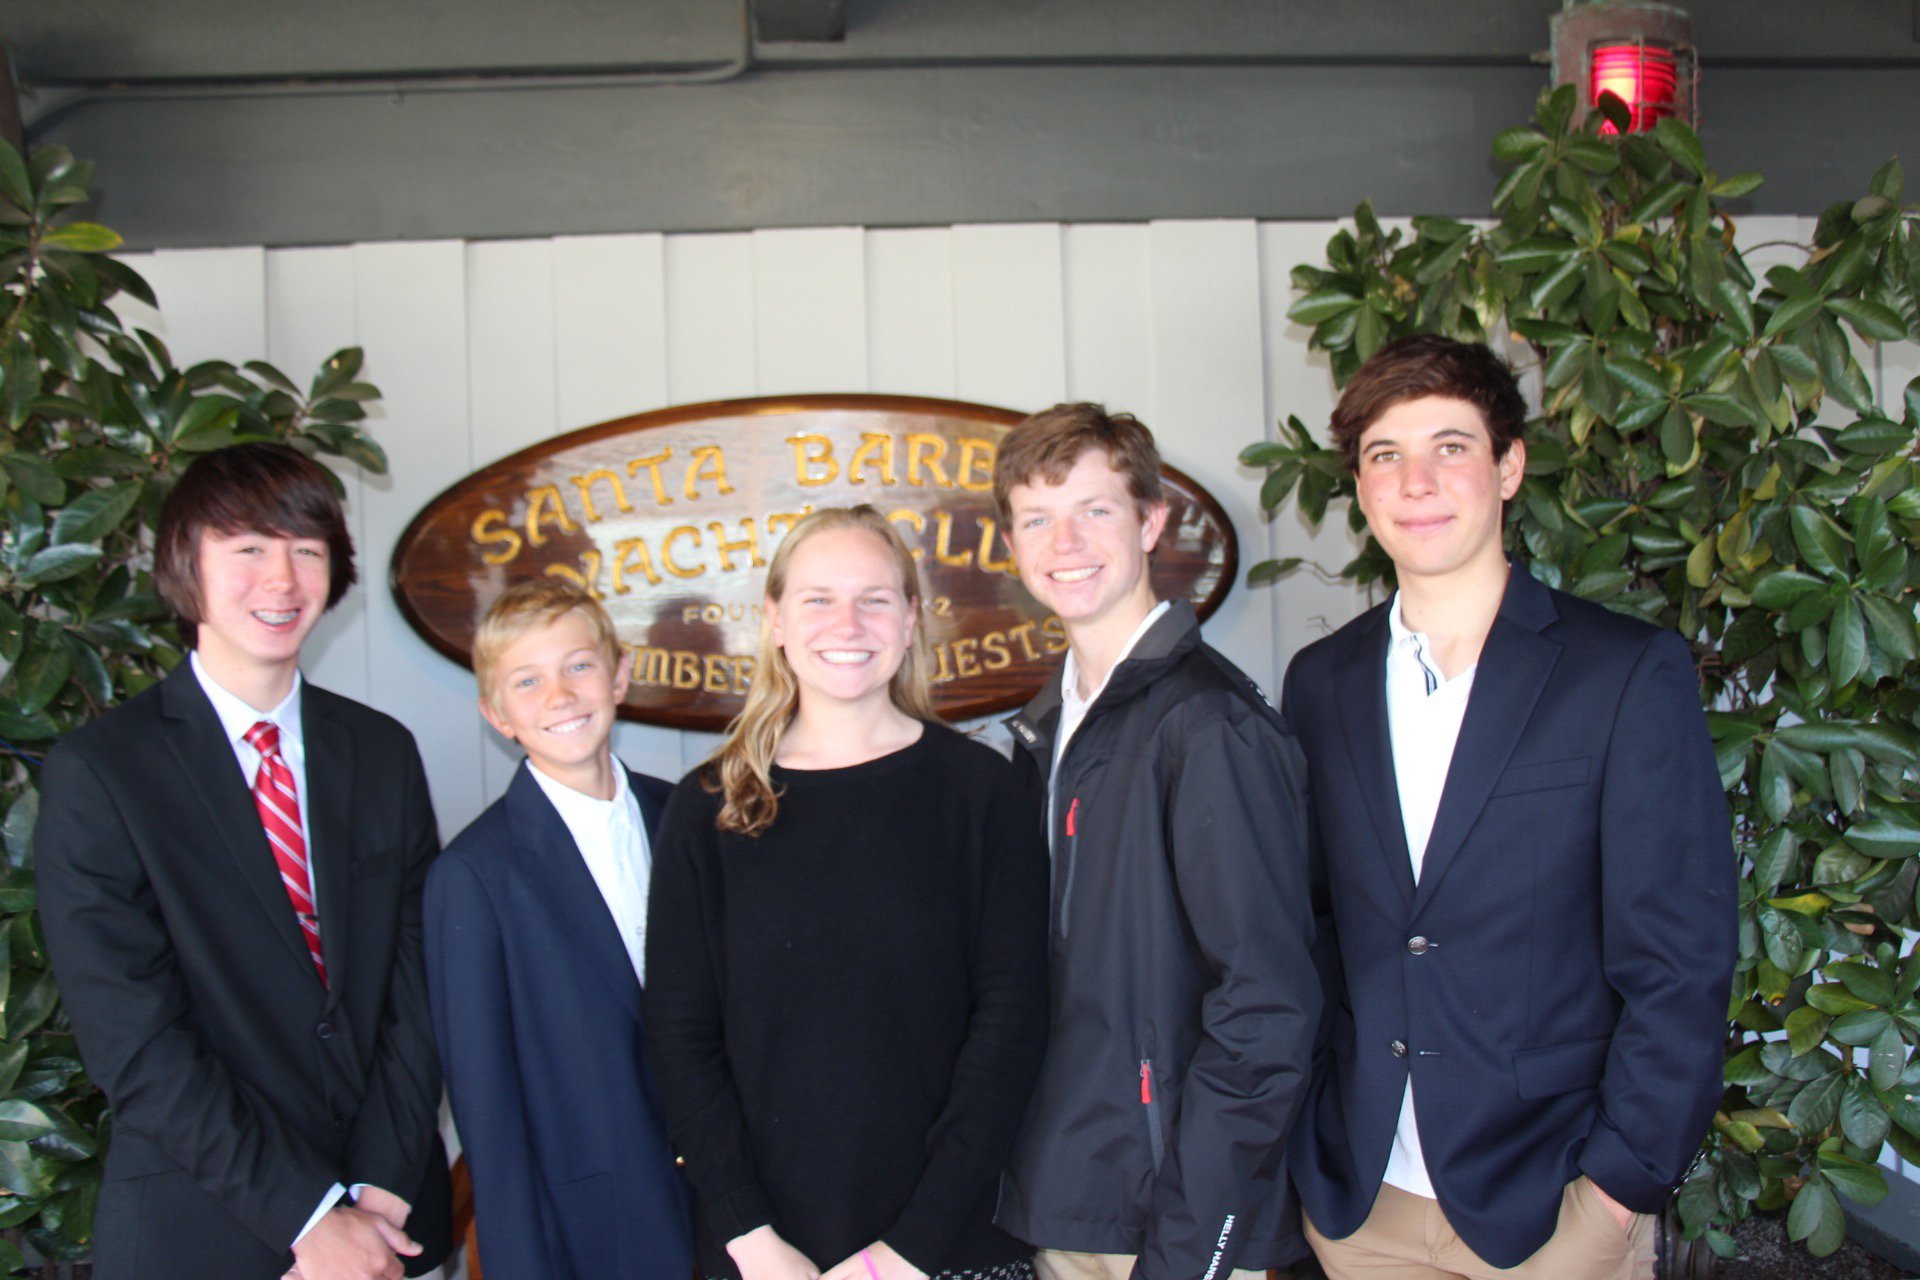 Members of the Santa Barbara Youth Sailing Foundation attended the ceremony including Ryan Eastwood, secretary, Oliver Stokke, Lauren Siegel, vice commodore, Lucas Pierce, commodore and Caden Scheiblauer, laser fleet captain.